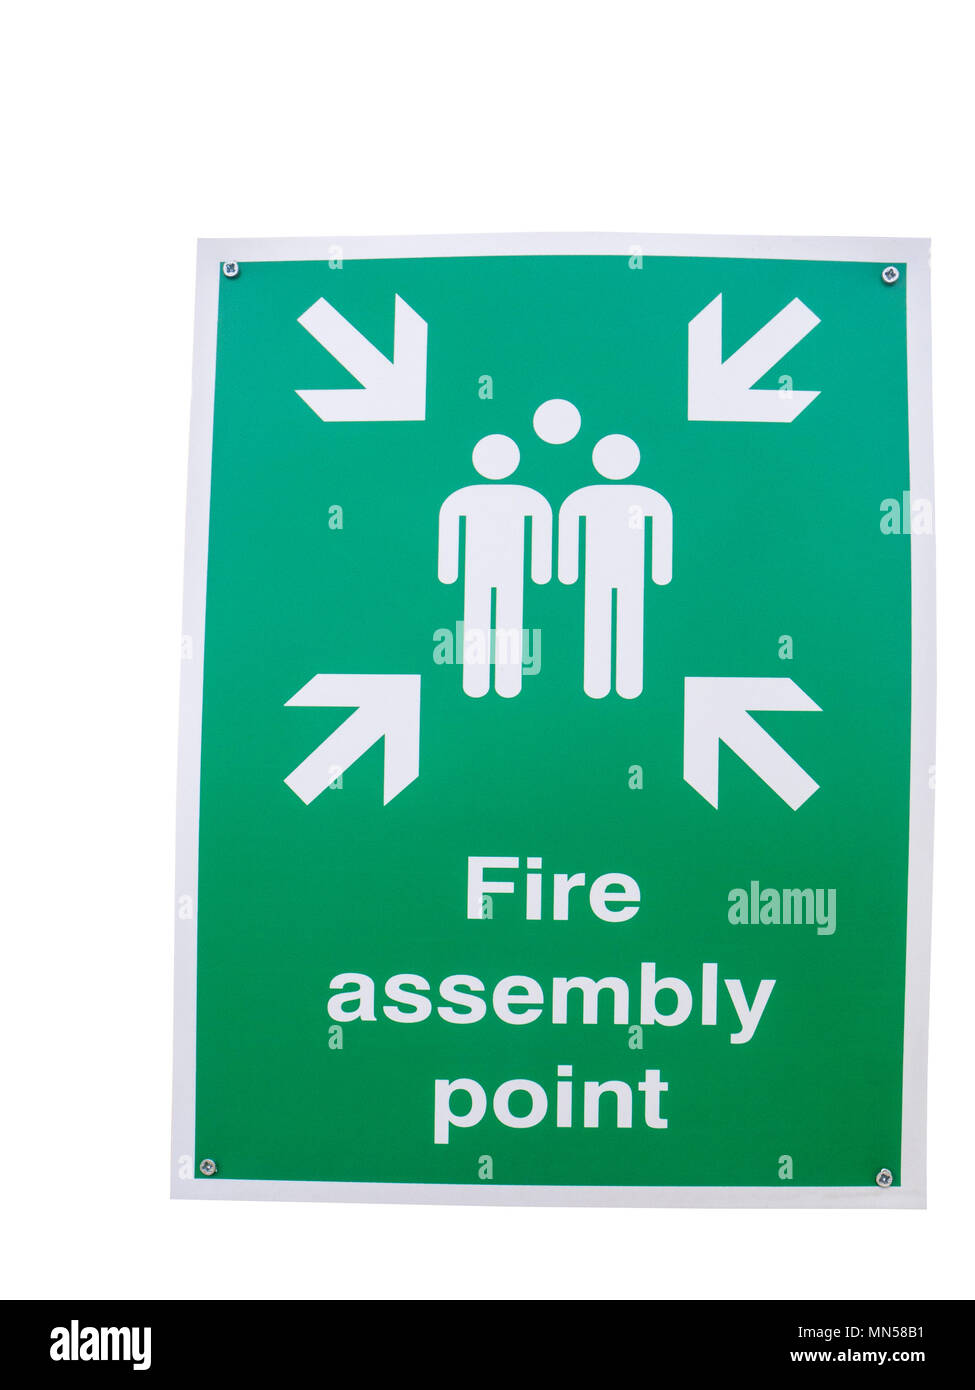 Cut out of a Fire assembly point banner - Stock Image